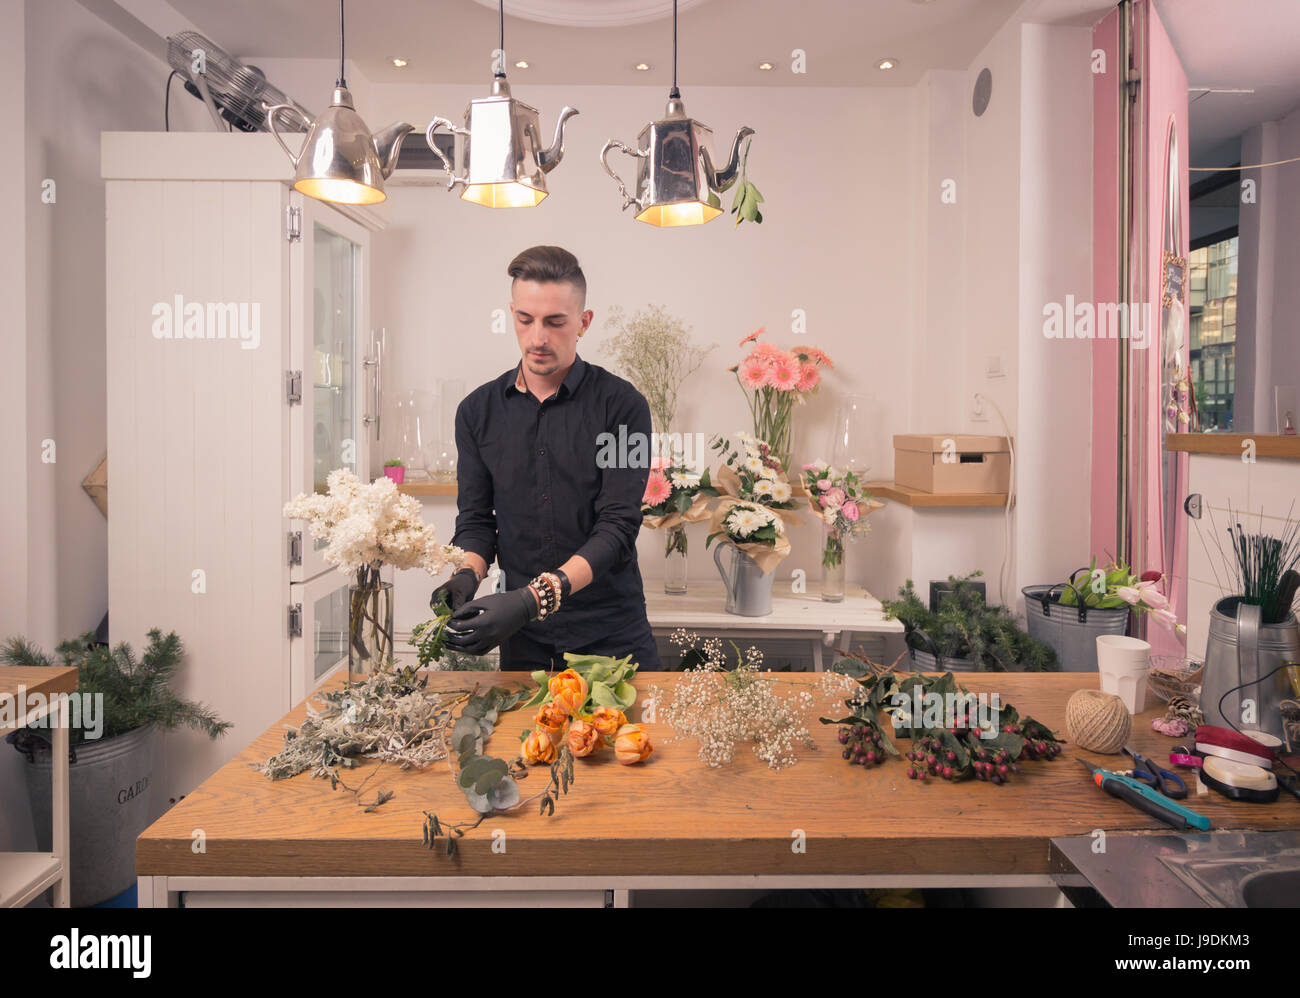 one young adult man, florist, arranging flowers, flower shop indoors - Stock Image